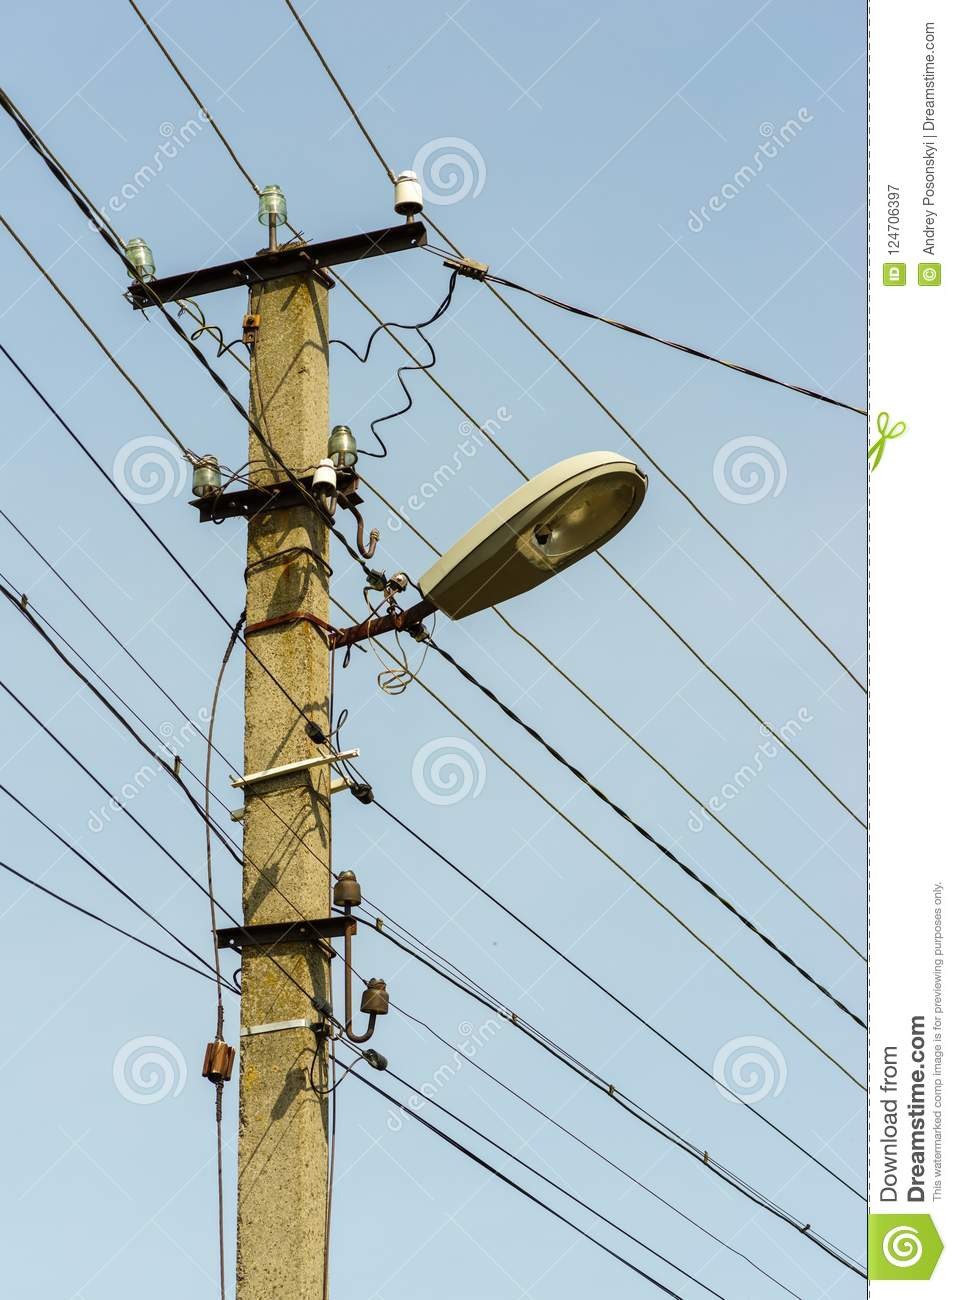 Electrical Wires And Connection On An Electric Post Stock Image ...